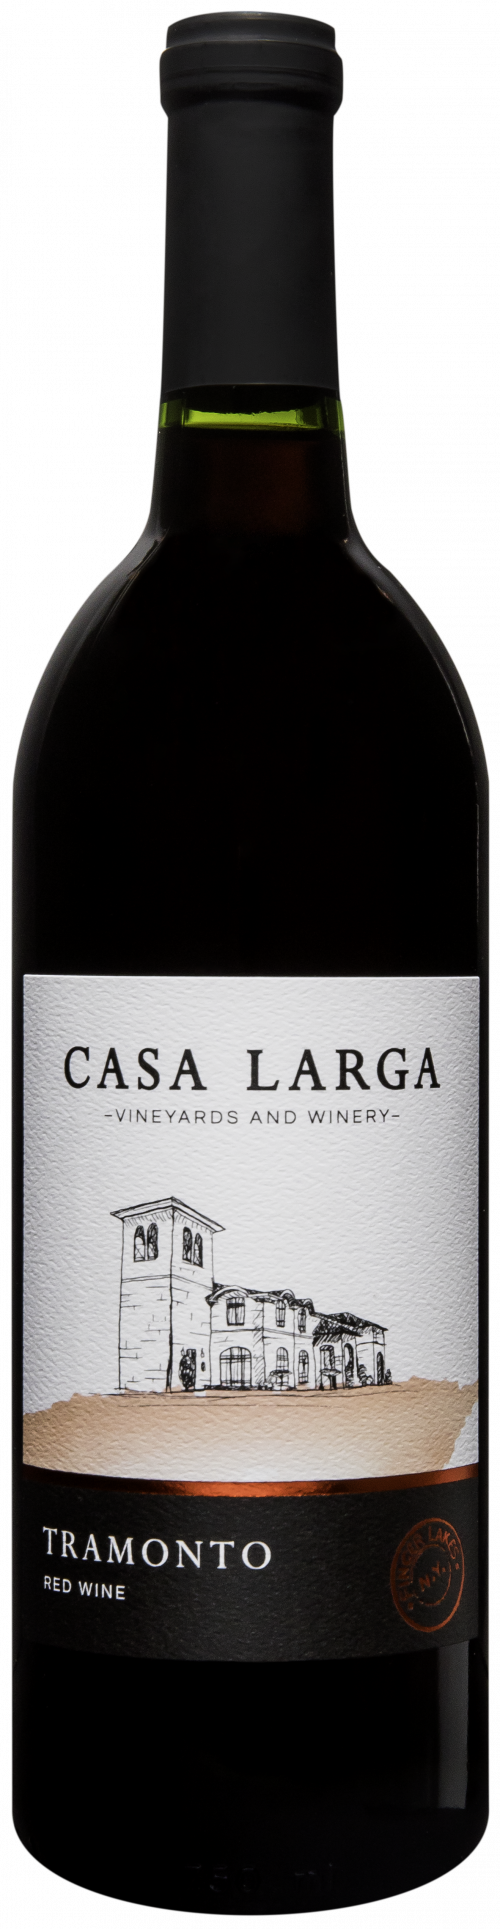 Casa Larga Tramonto 750ml NV